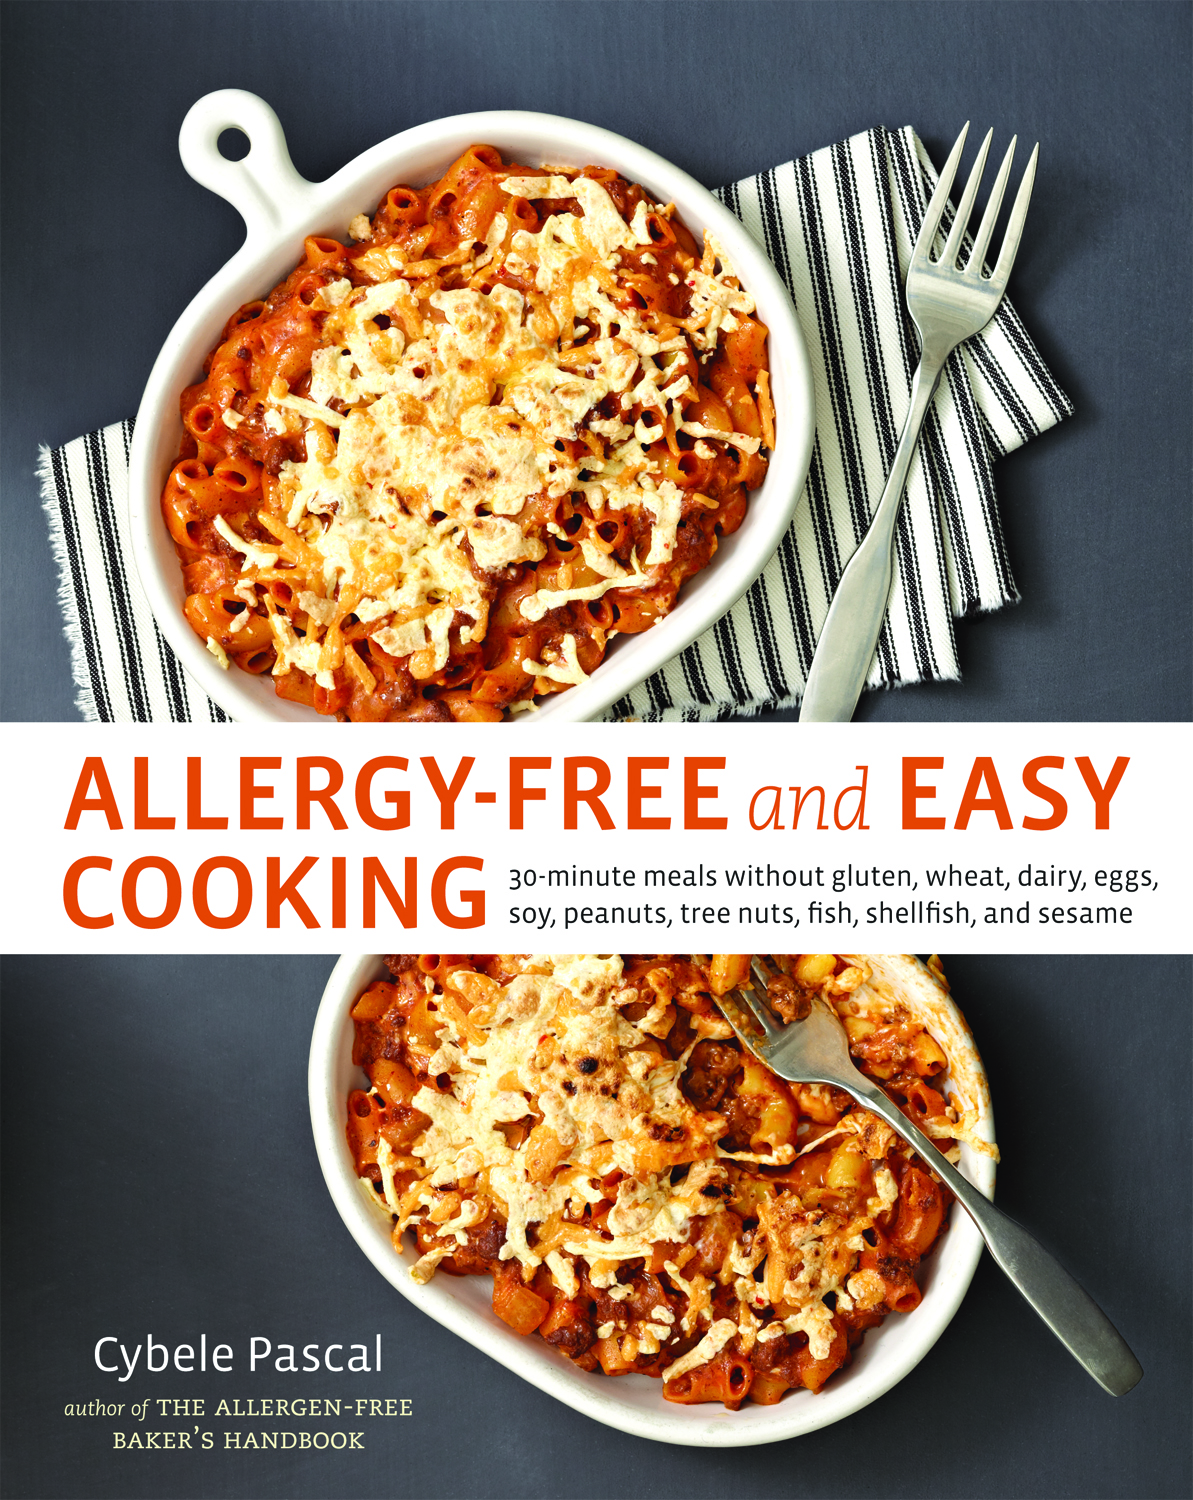 Pasc_Allergy-Free and Easy Cooking